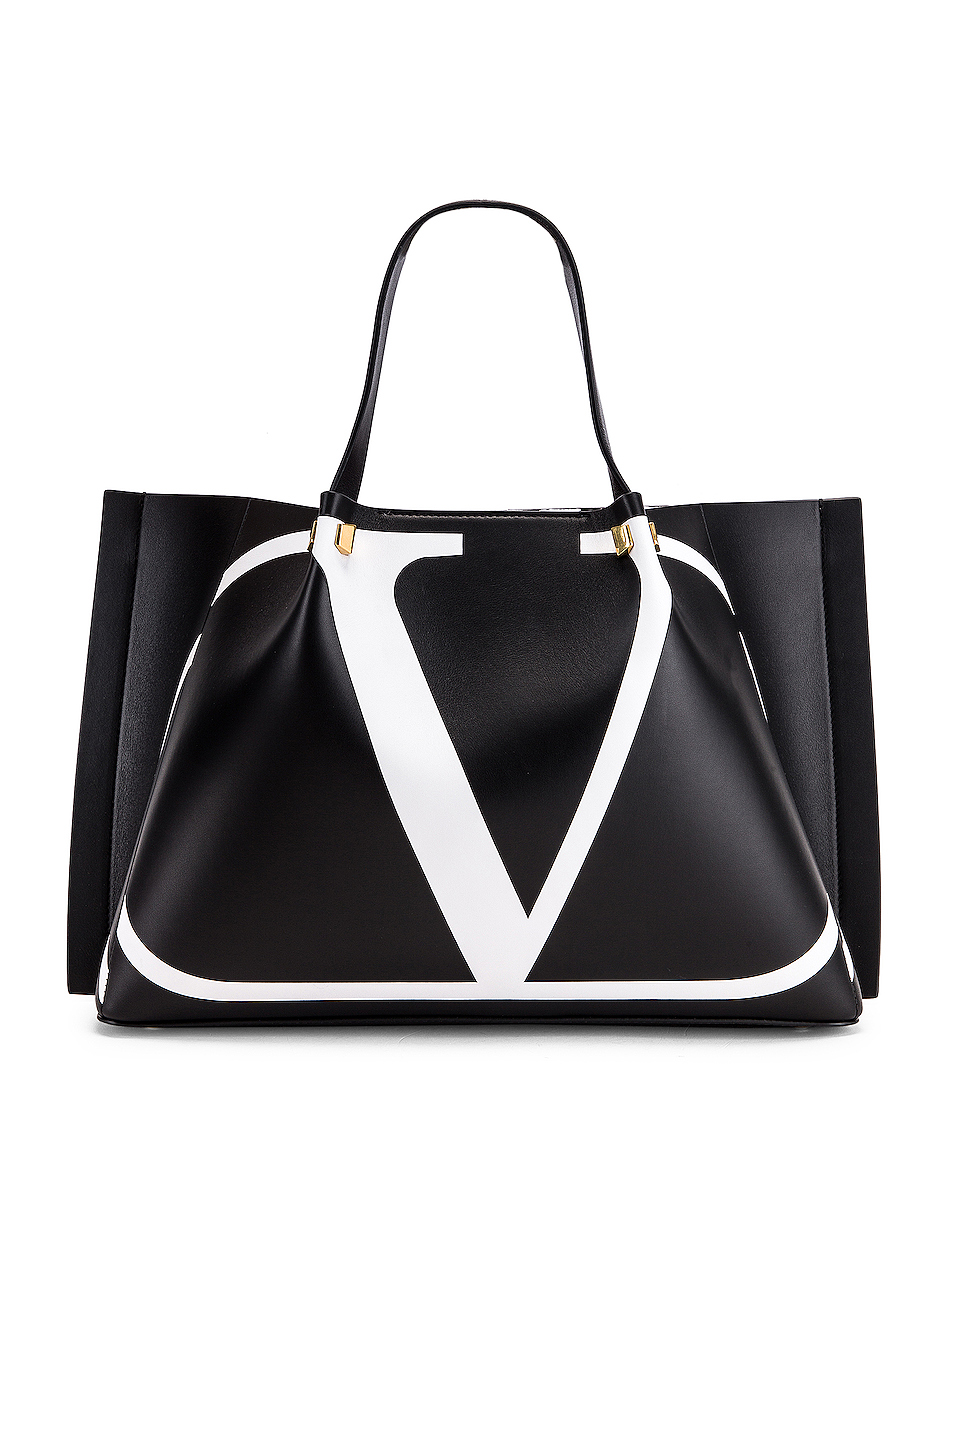 5ae9ee67f5f Go Logo Escape Medium Tote, Valentino